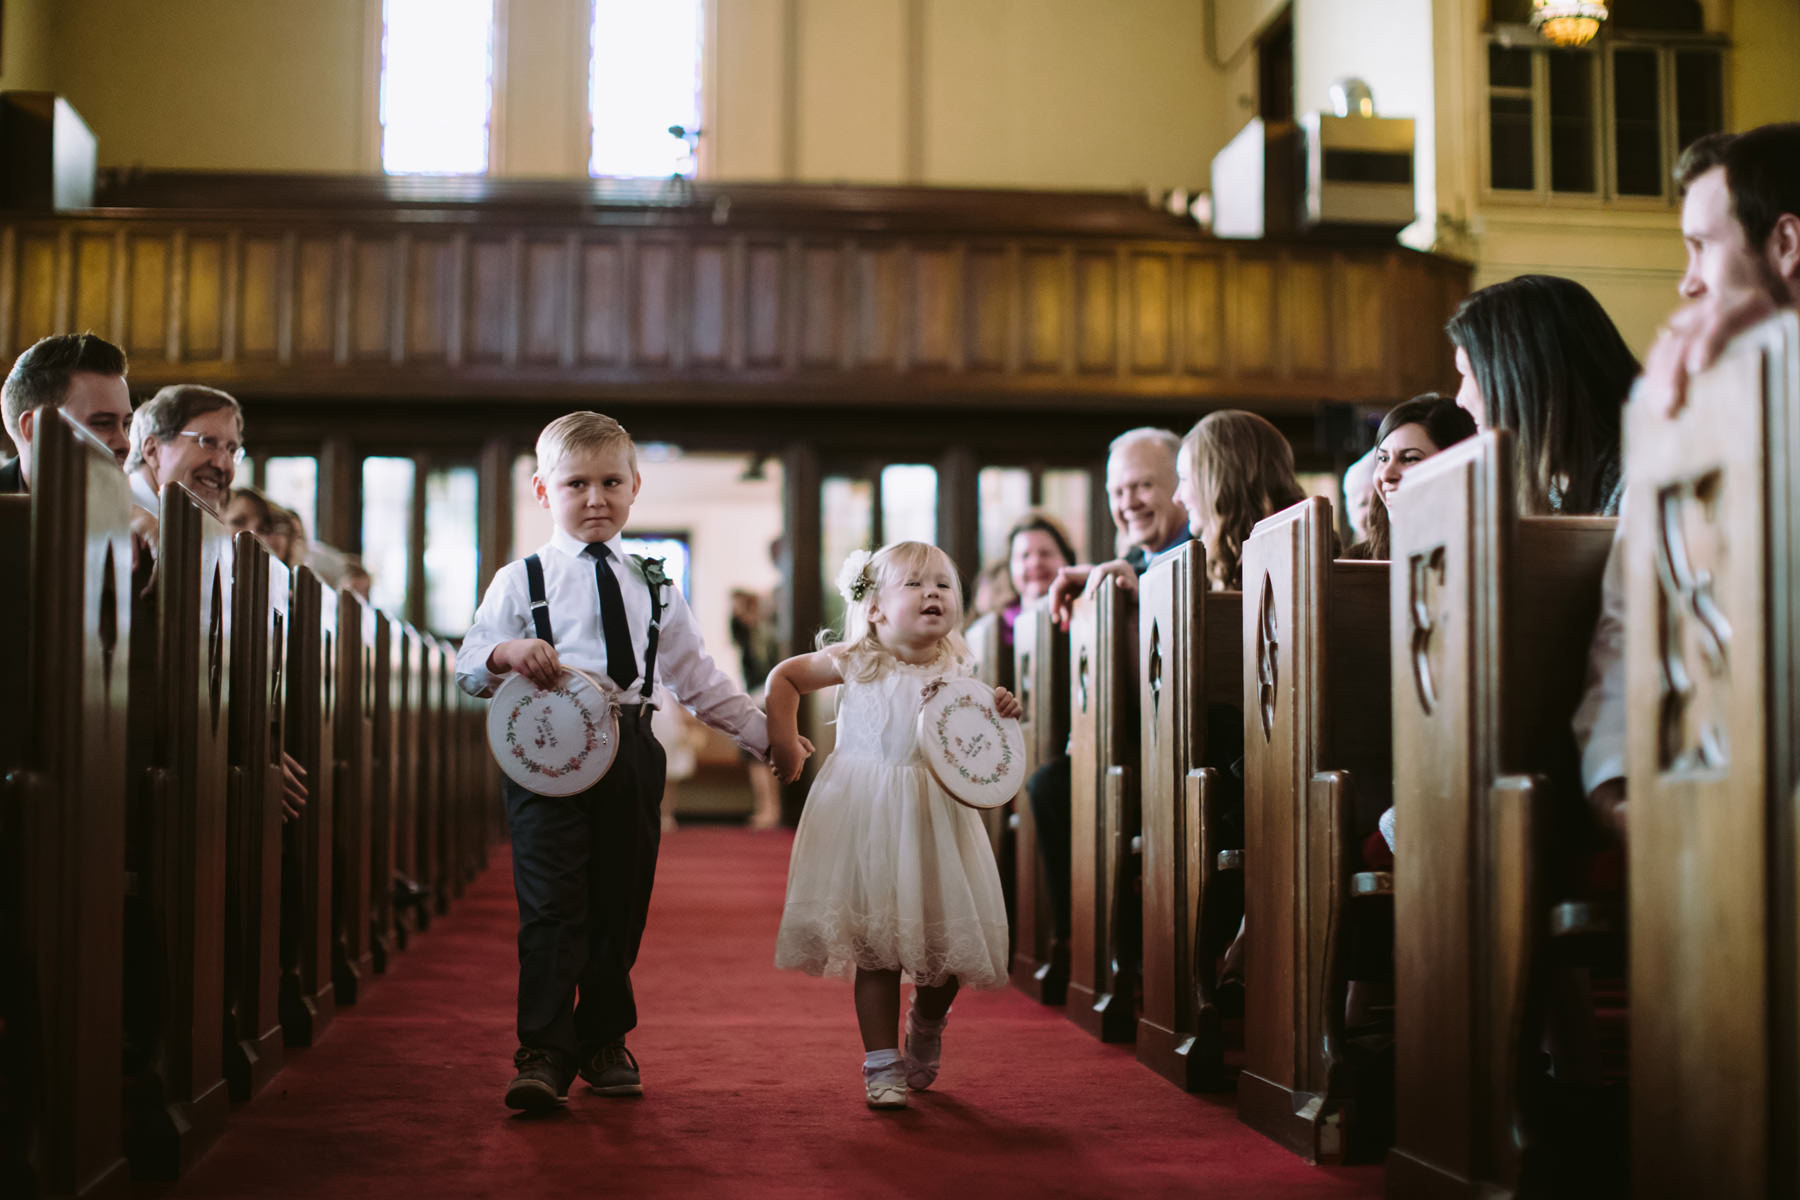 36_Jacob's Well Church Drexel Hall Fall Wedding Kansas City, Missouri_Kindling Wedding Photography.JPG